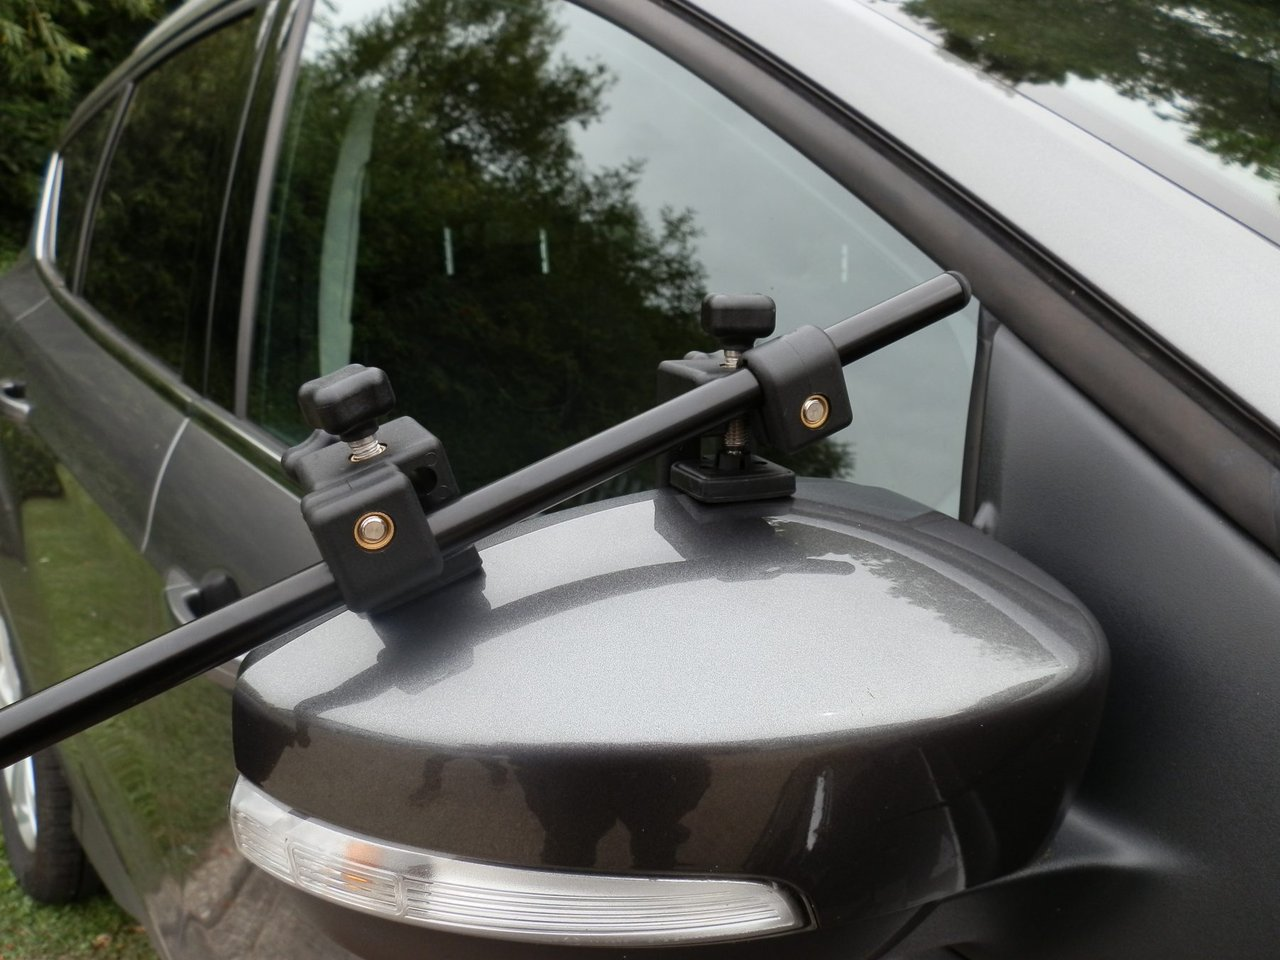 Caravan Towing Mirrors Milenco Aero 3 Extra Wide 41cm